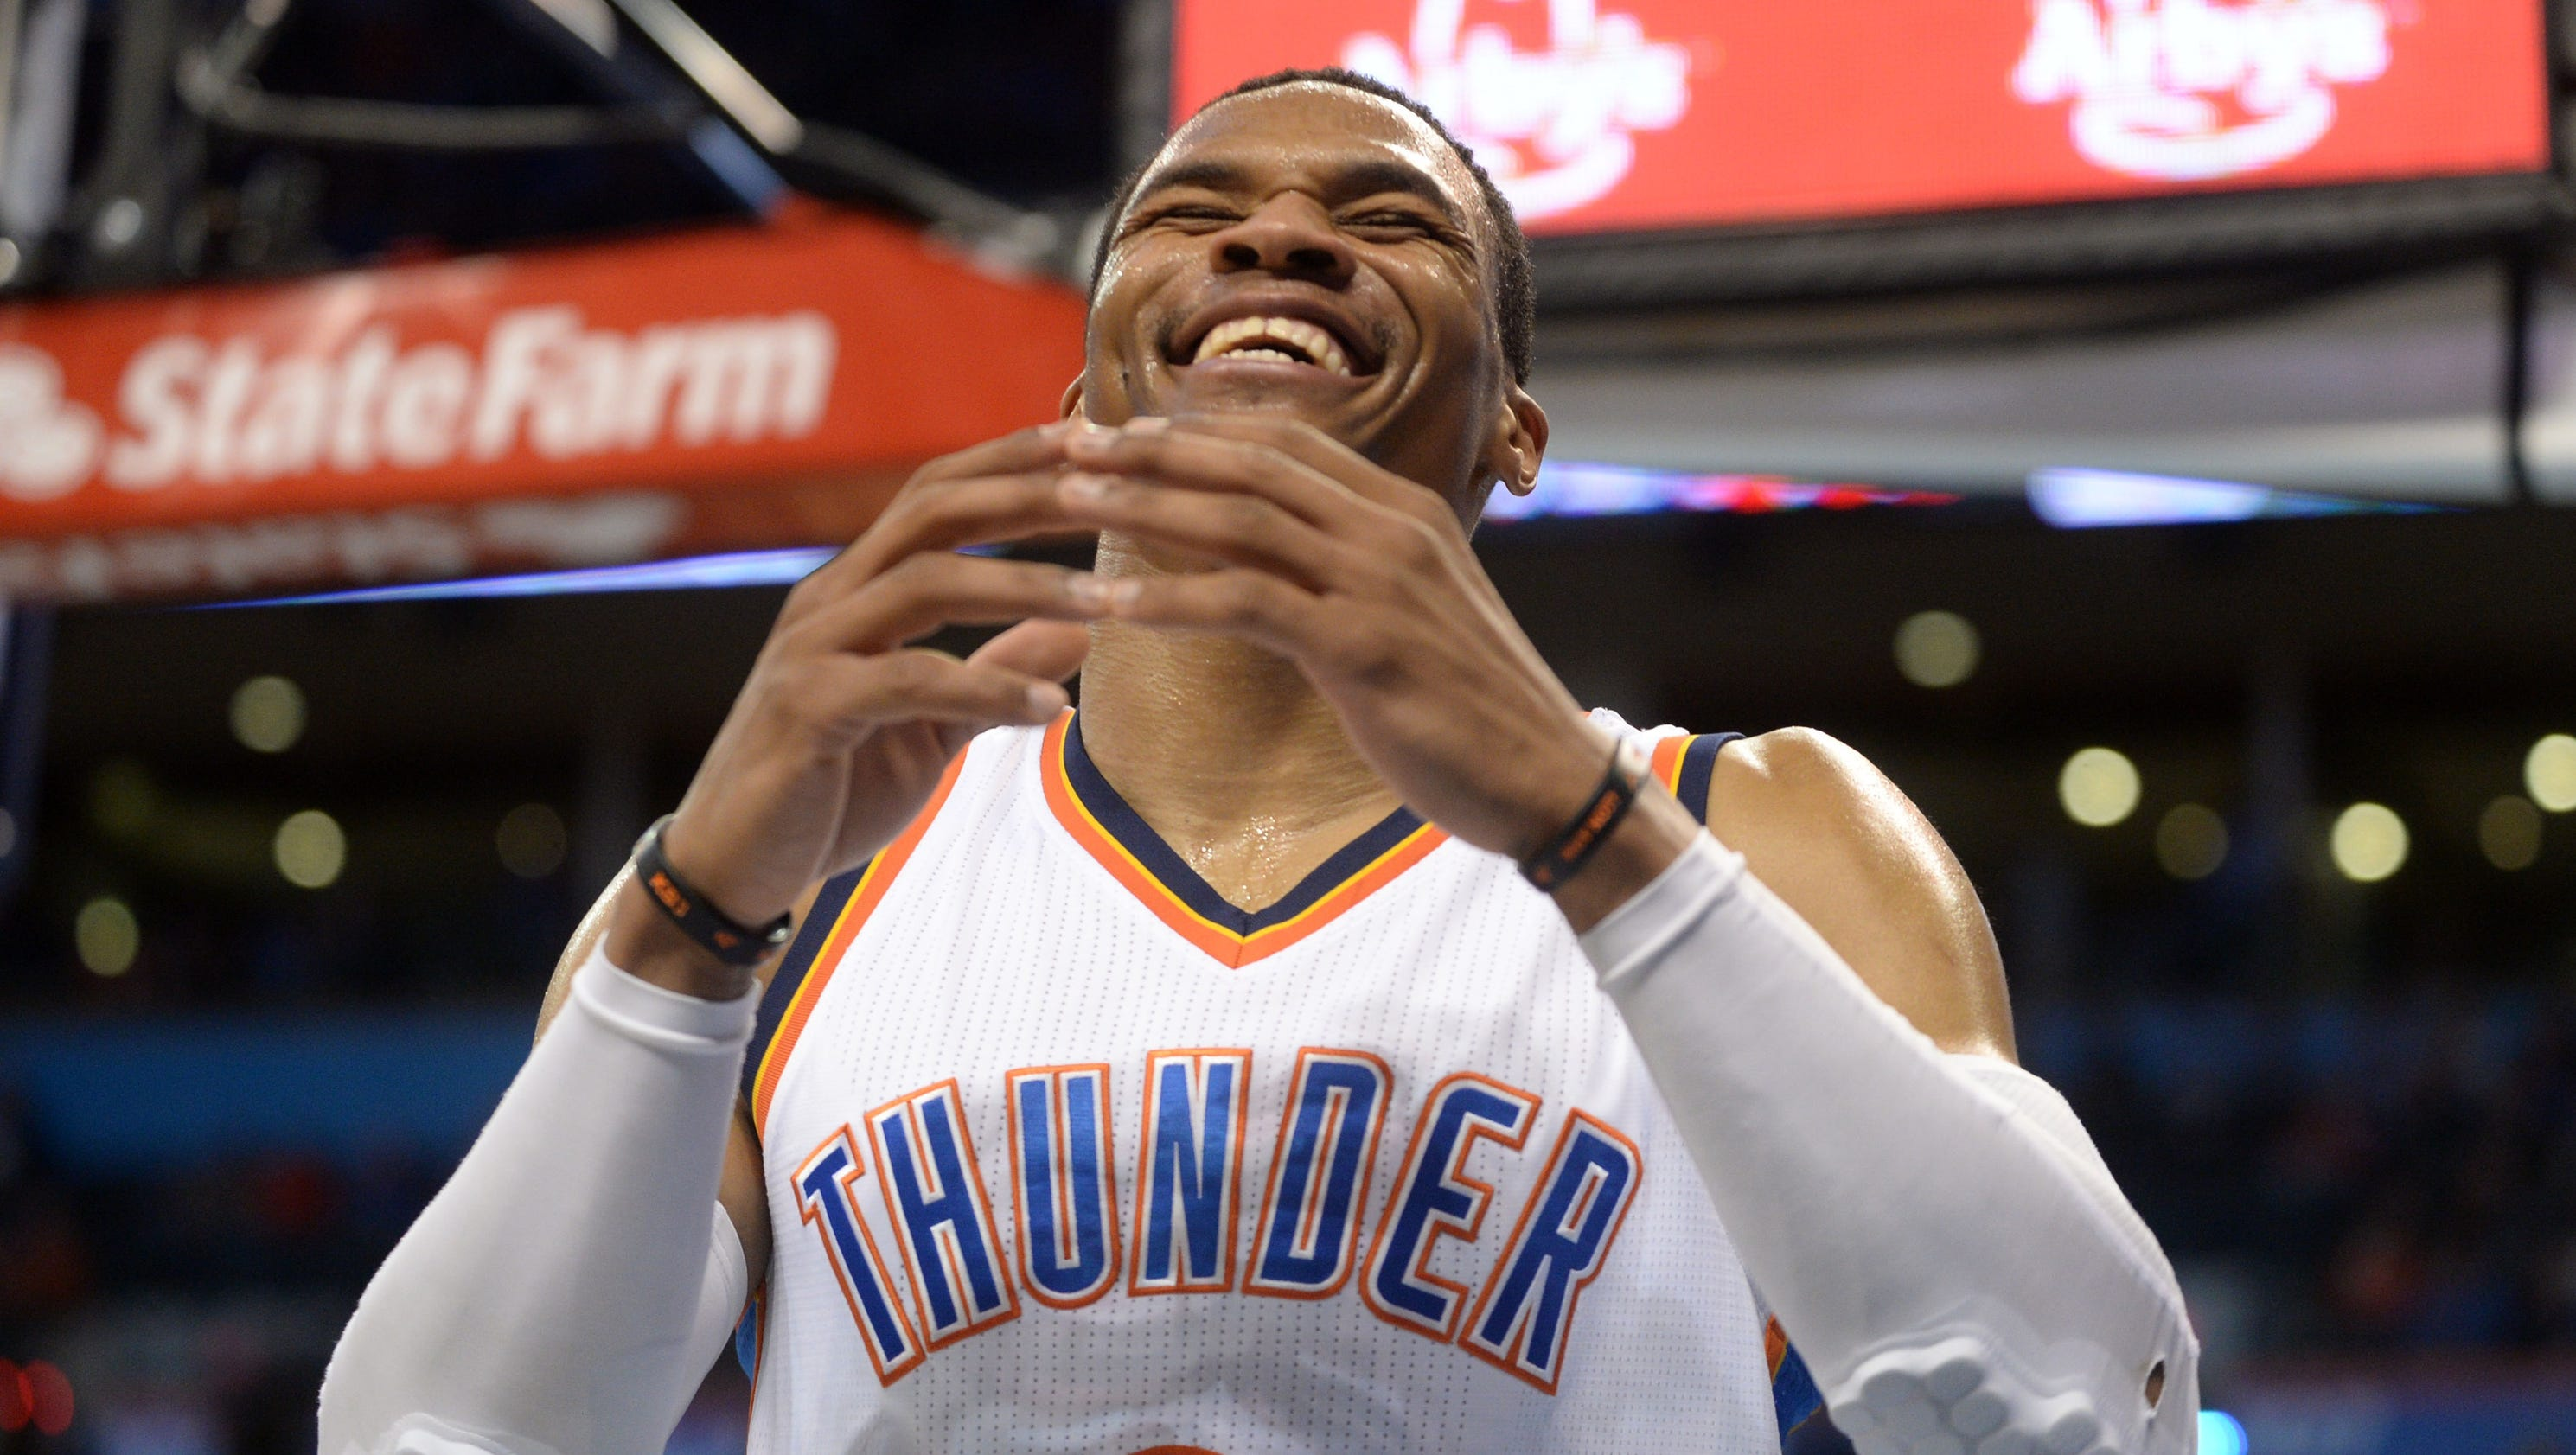 russell westbrook - photo #10